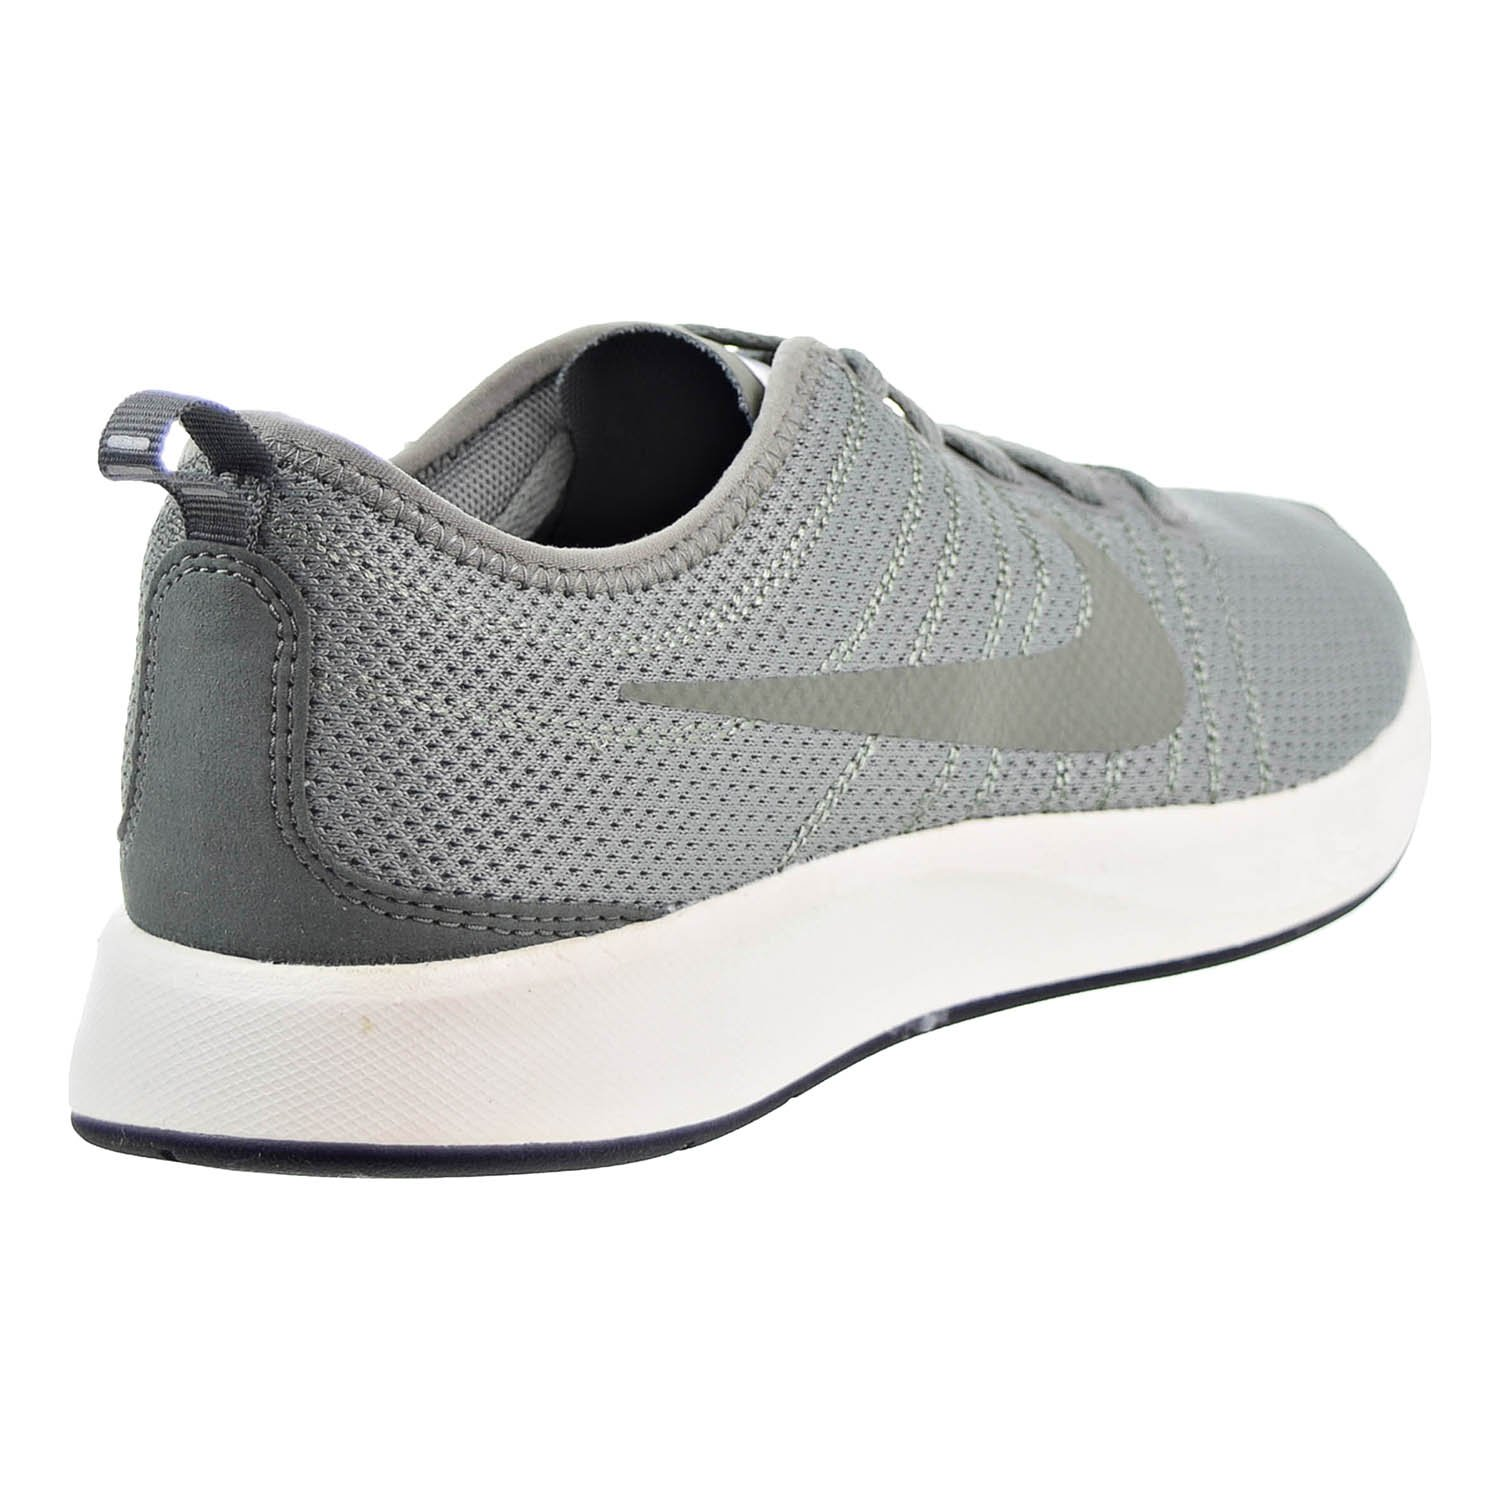 NIKE Women's Dualtone Racer Running Shoe B073S9BJQX 6 B(M) US|Dark Stucco / Dark Stucco